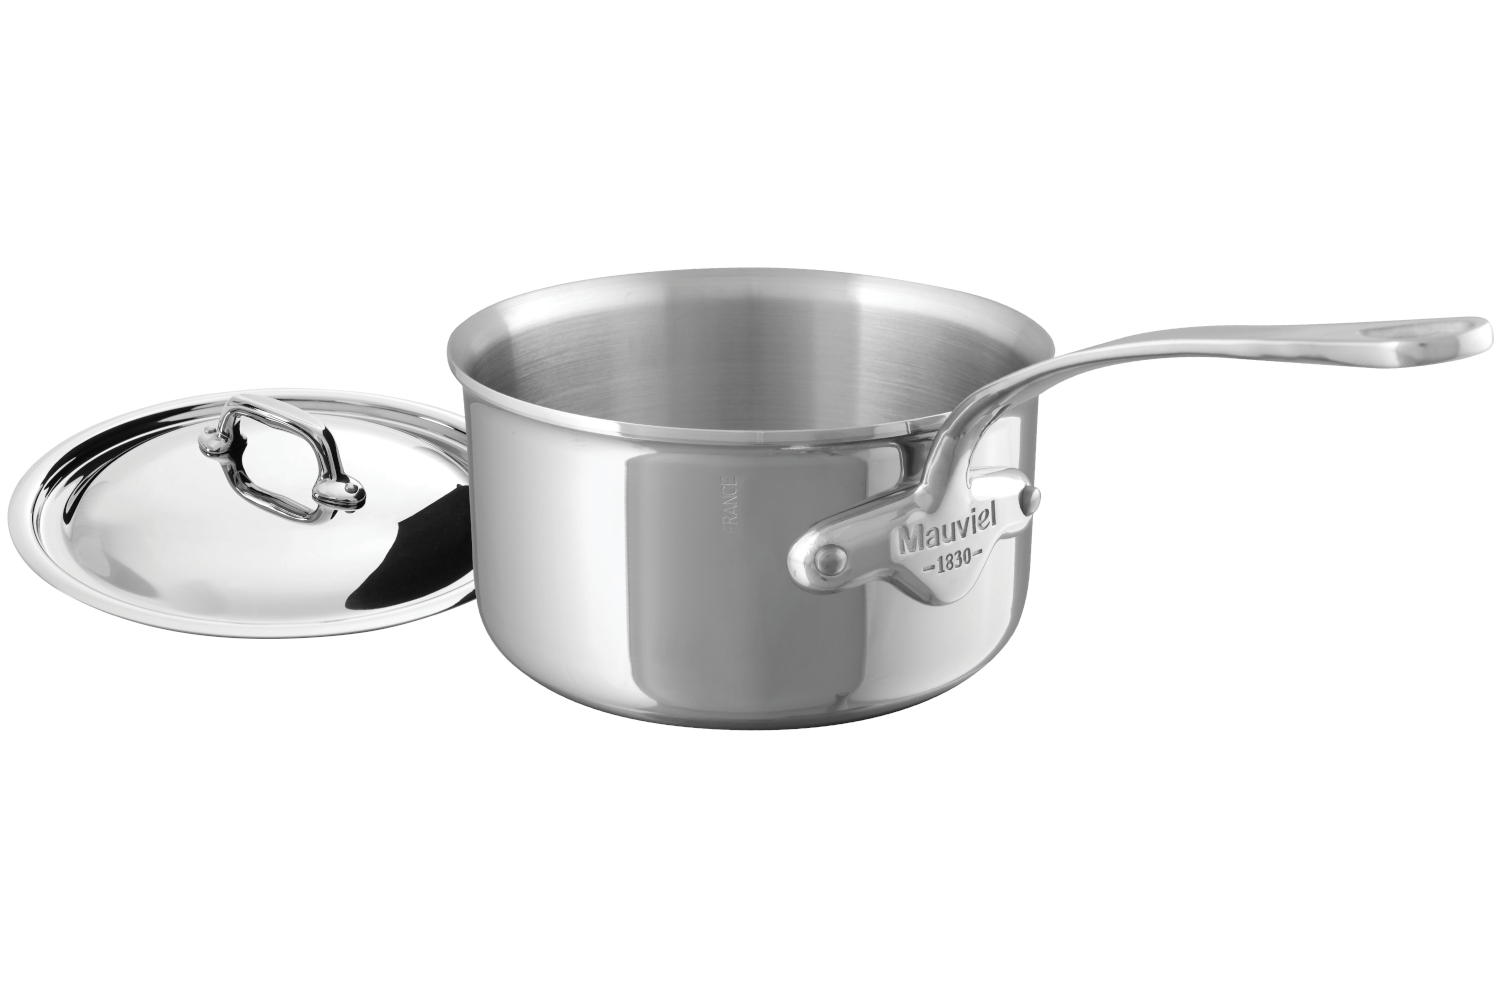 Mauviel M'cook Stainless Steel 3.4 qt. Sauce Pan w/Lid